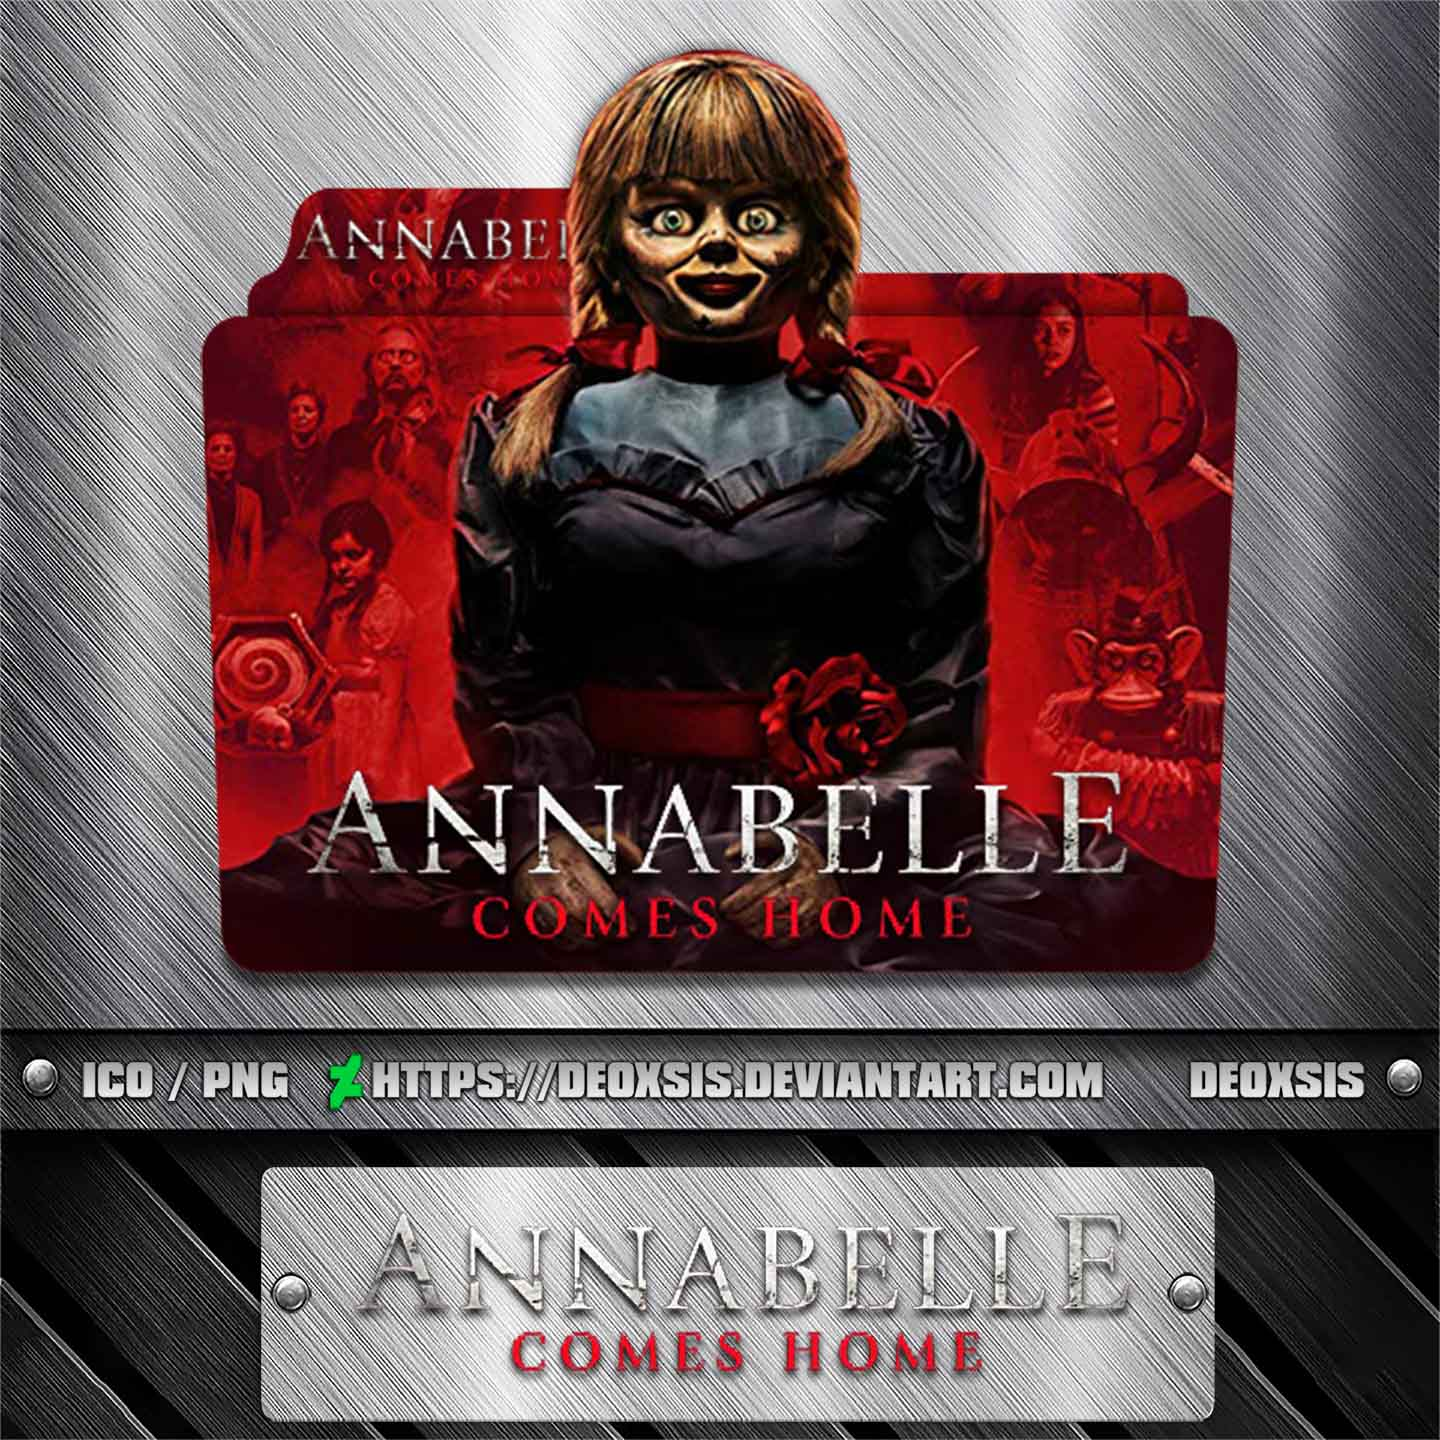 Annabelle Comes Home 2019 Folder Icon By Deoxsis On Deviantart